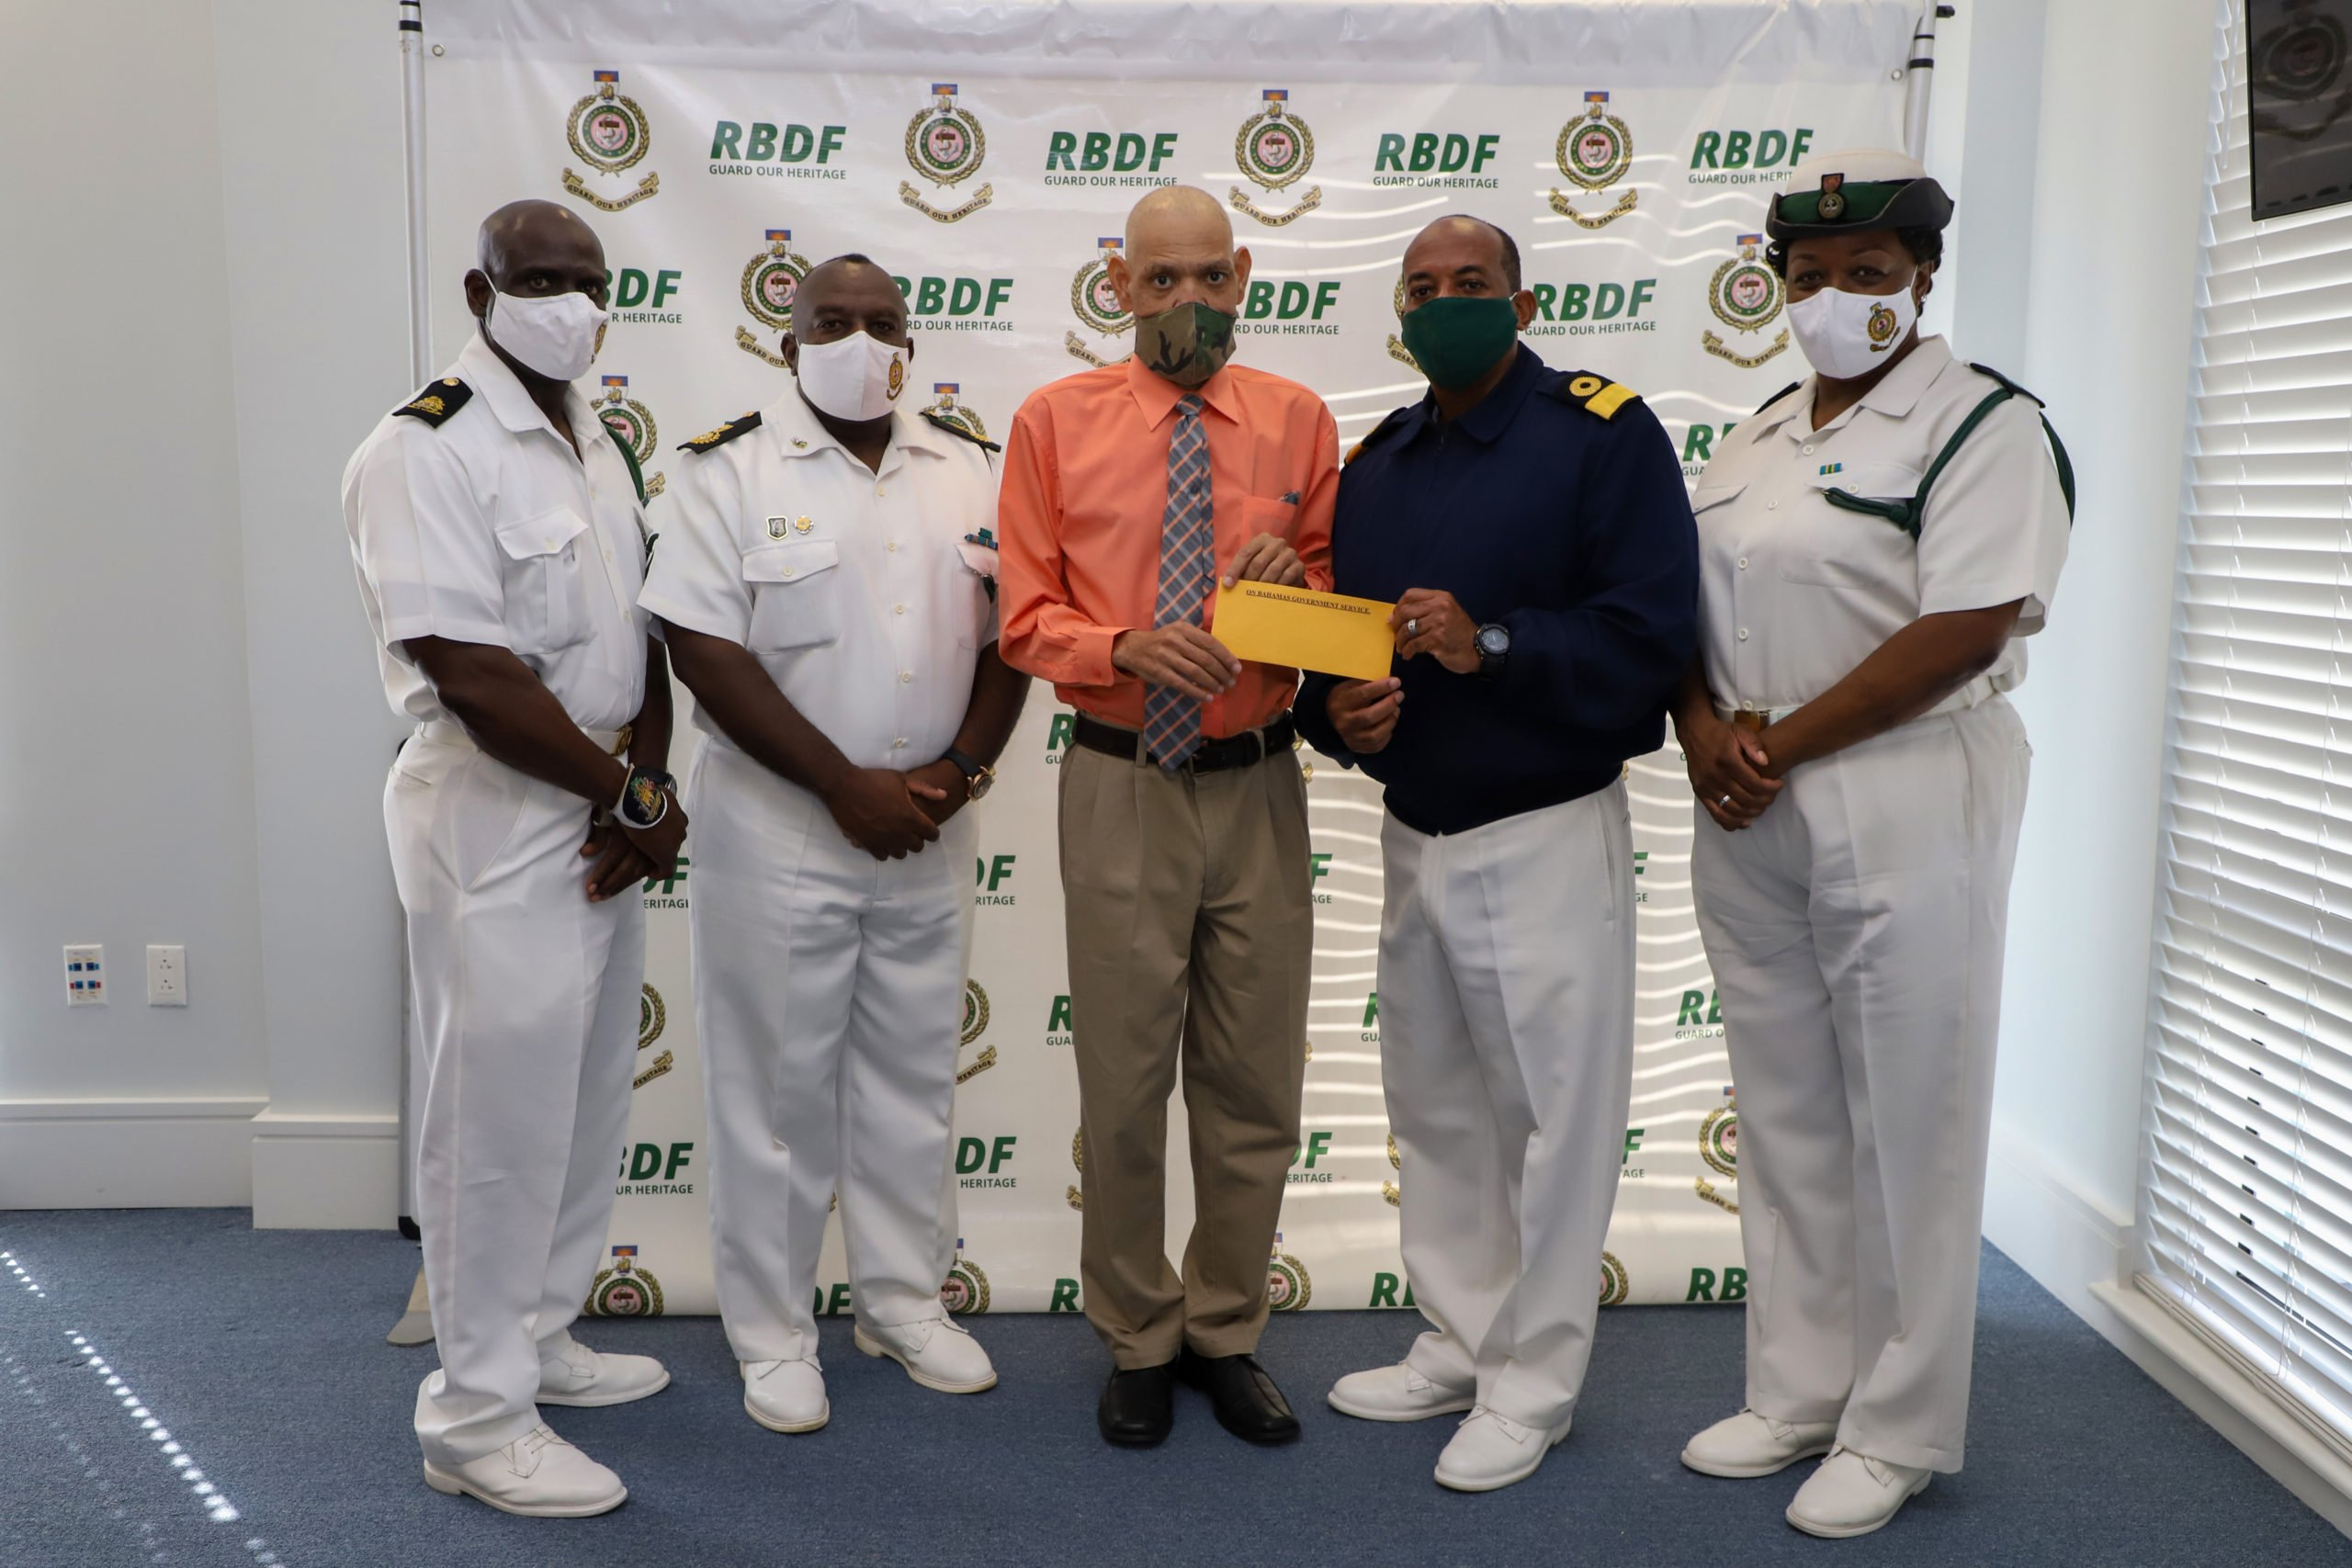 RBDF provides comrade with medical assistance